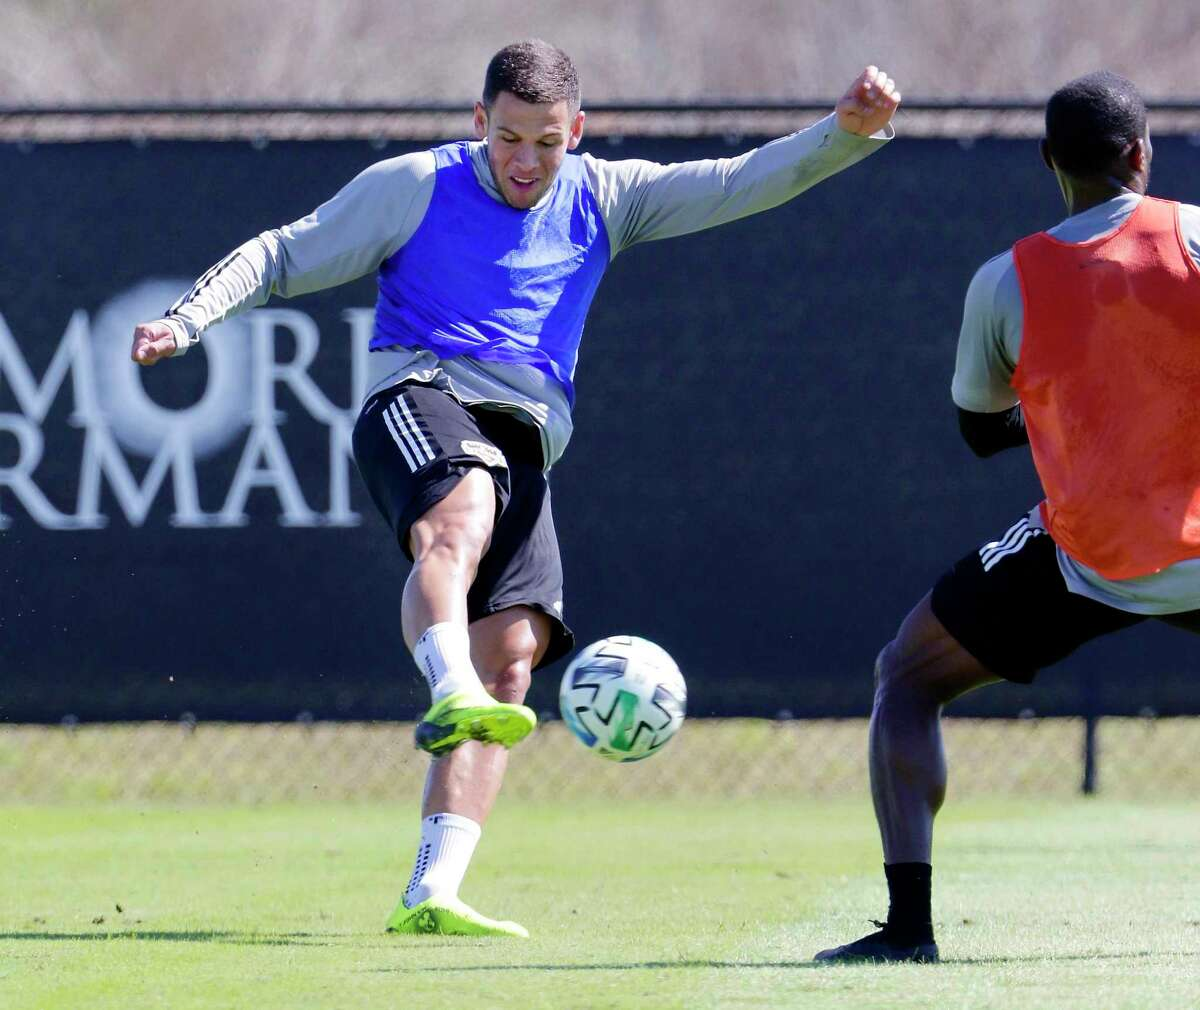 Dynamo players, like forward Christian Ramirez practicing earlier in the season, will be allowed expanded workouts as the MLS looks to return from the coronavirus.